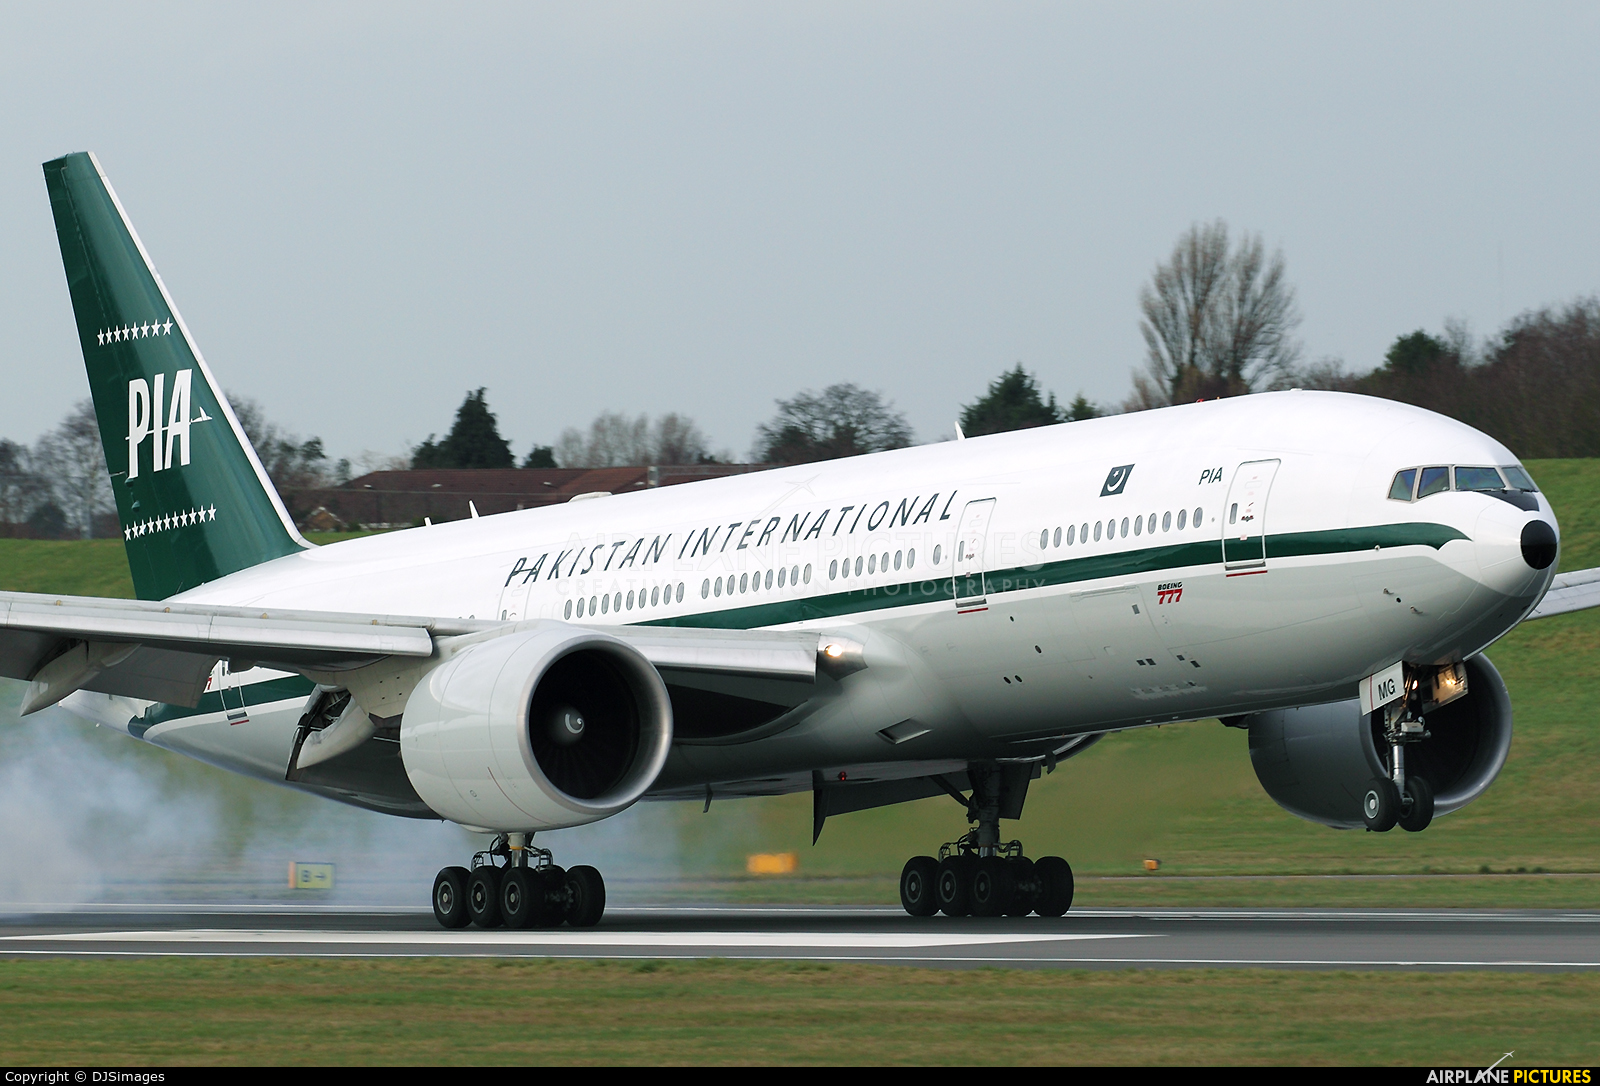 PIA - Pakistan International Airlines AP-BMG aircraft at Birmingham